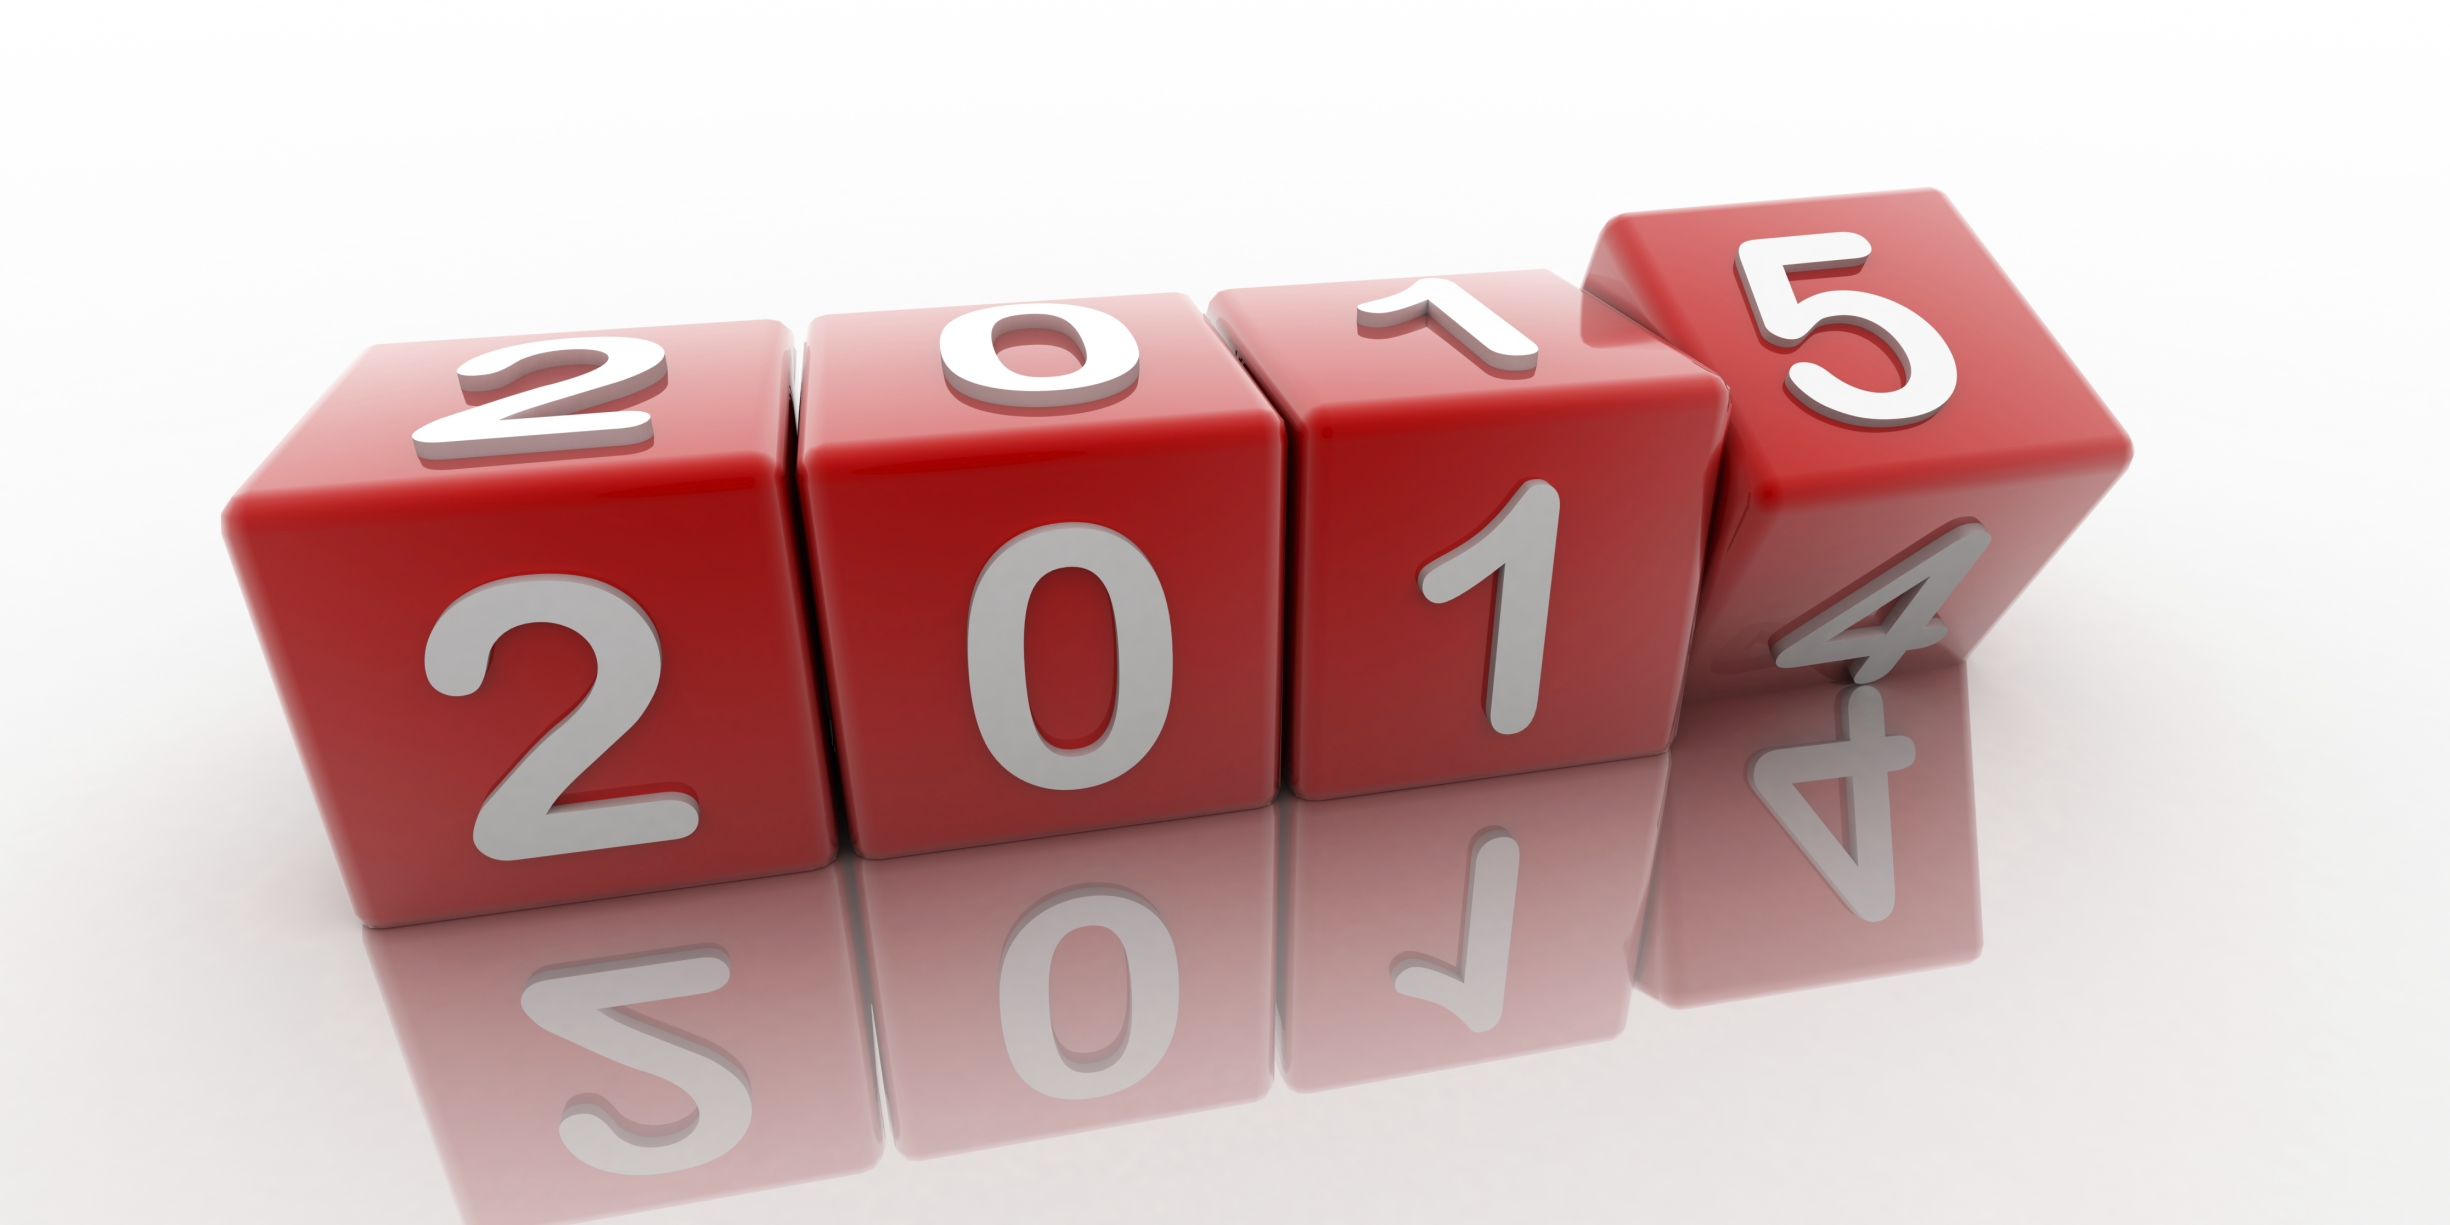 How to Make Resolutions That Actually Work